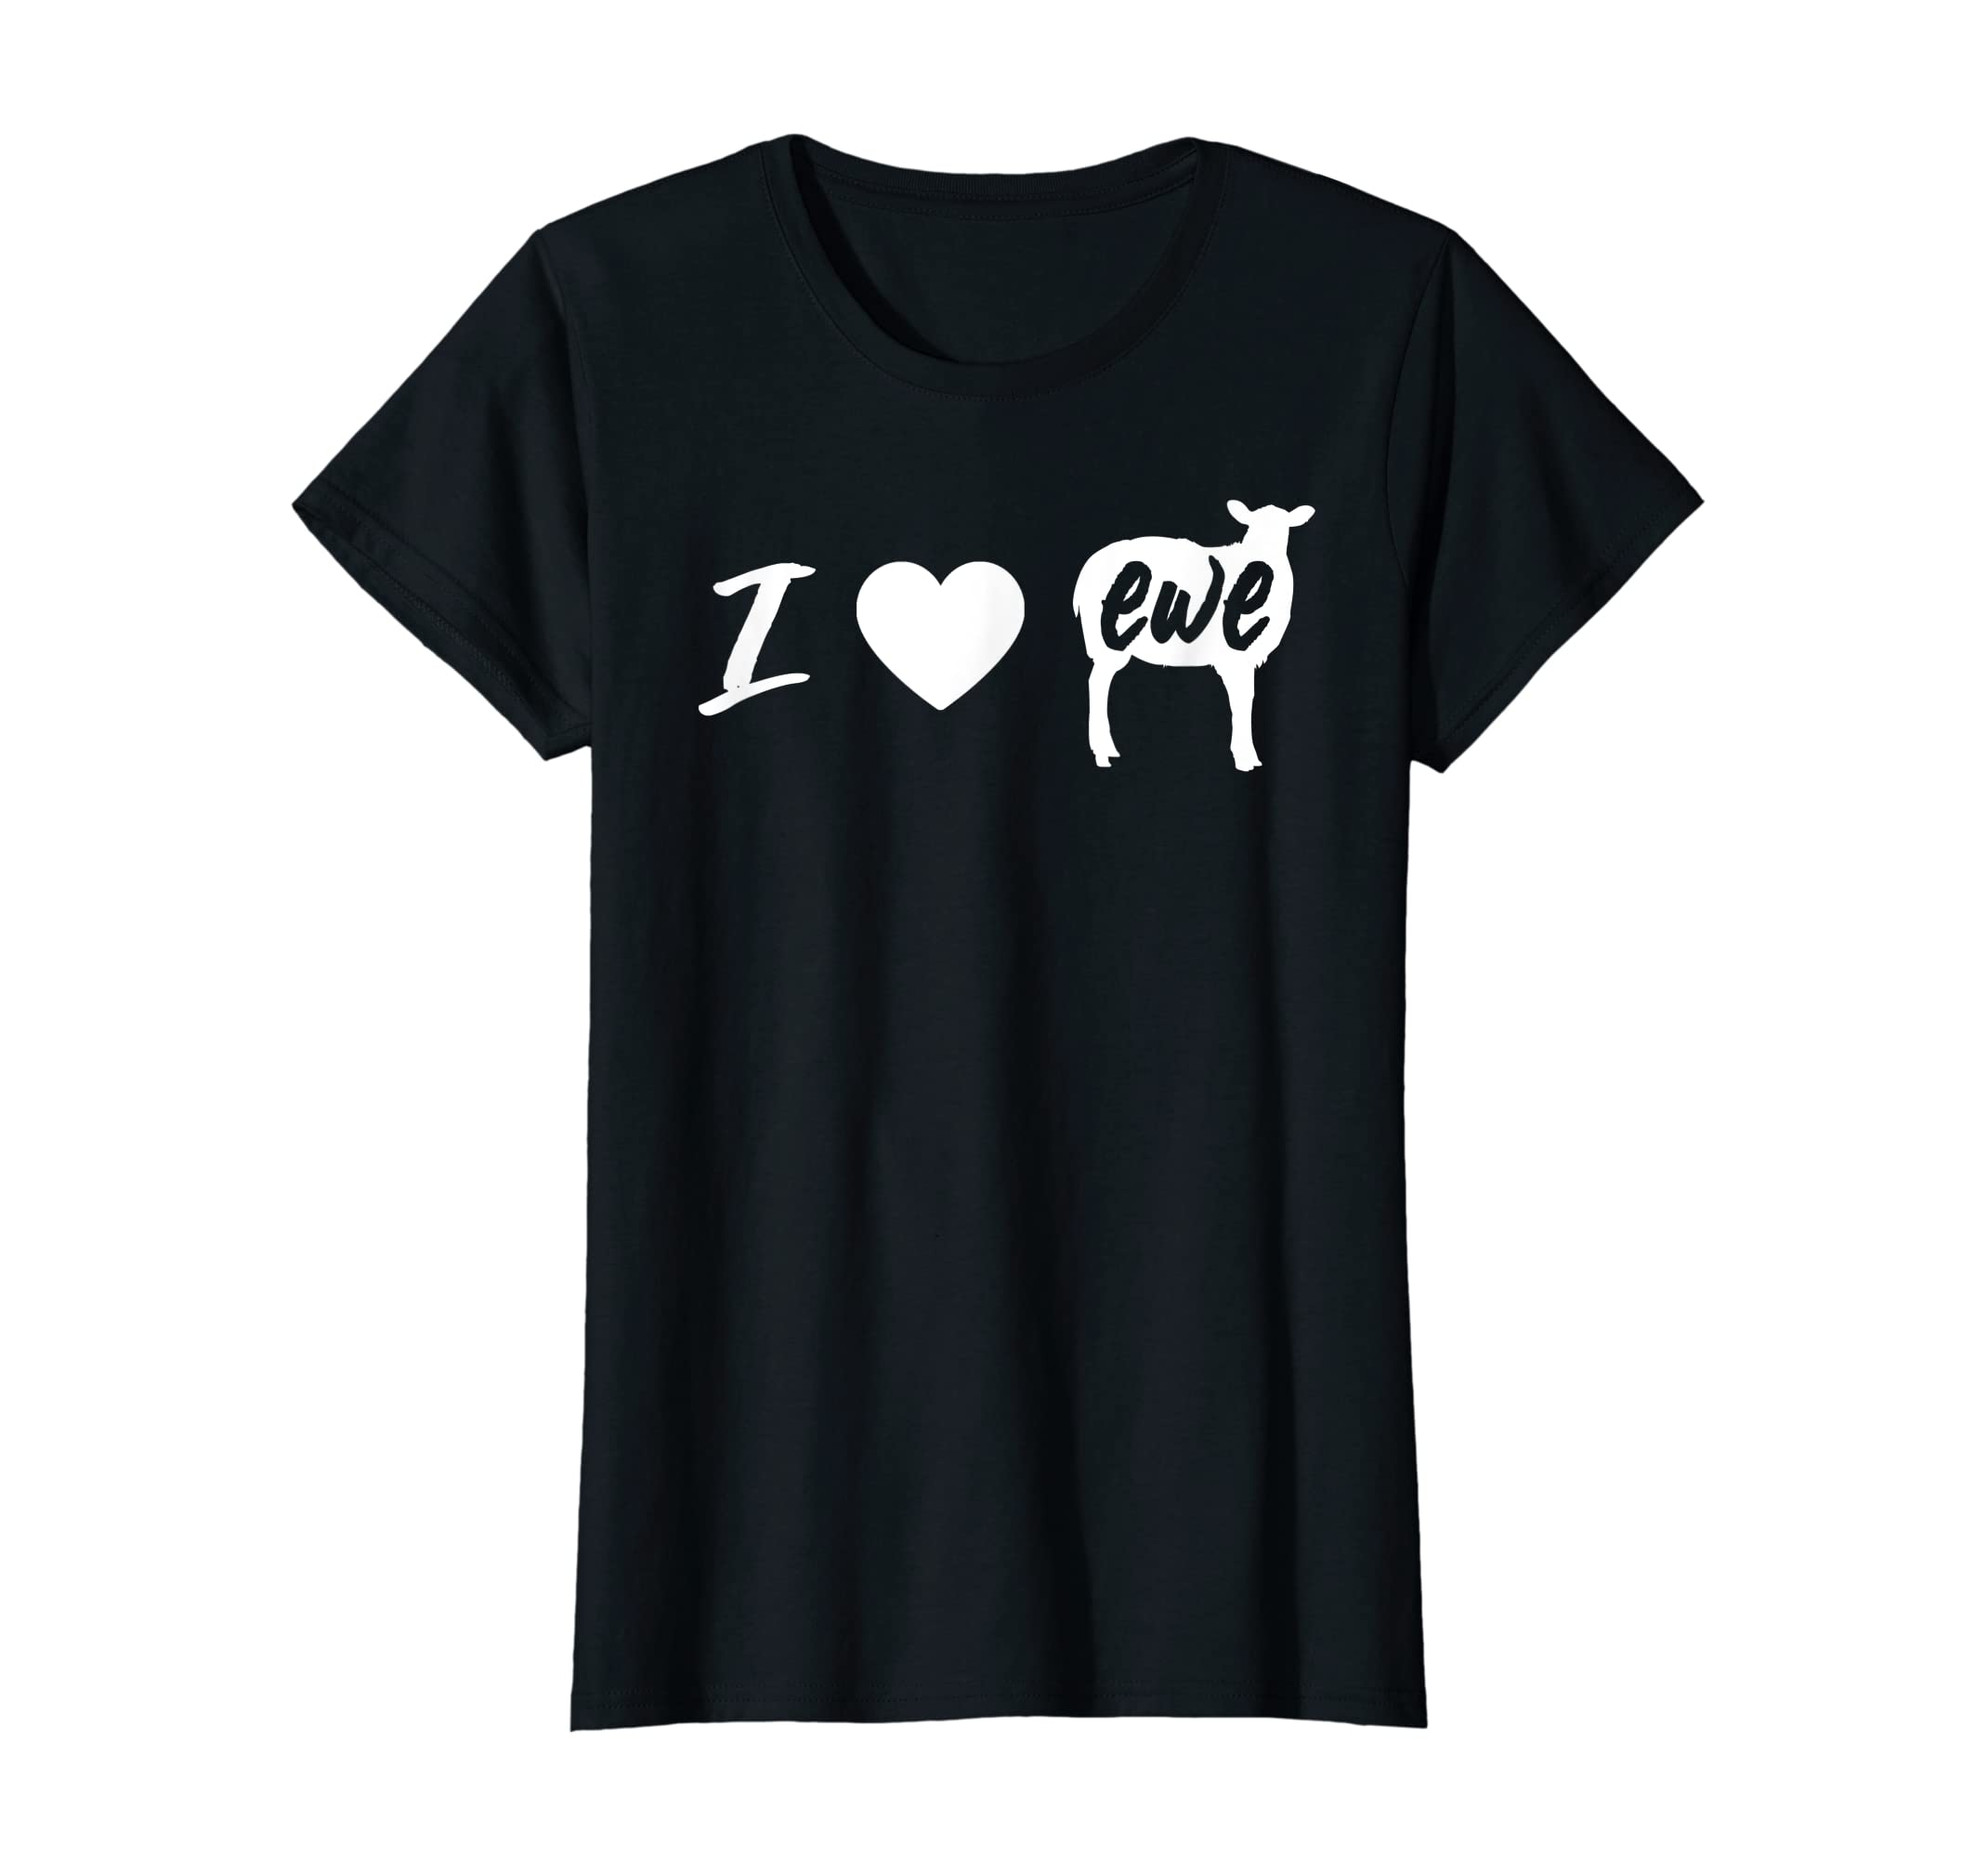 I Love Ewe - I Love You Sheep Pun Shirt-Women's T-Shirt-Black